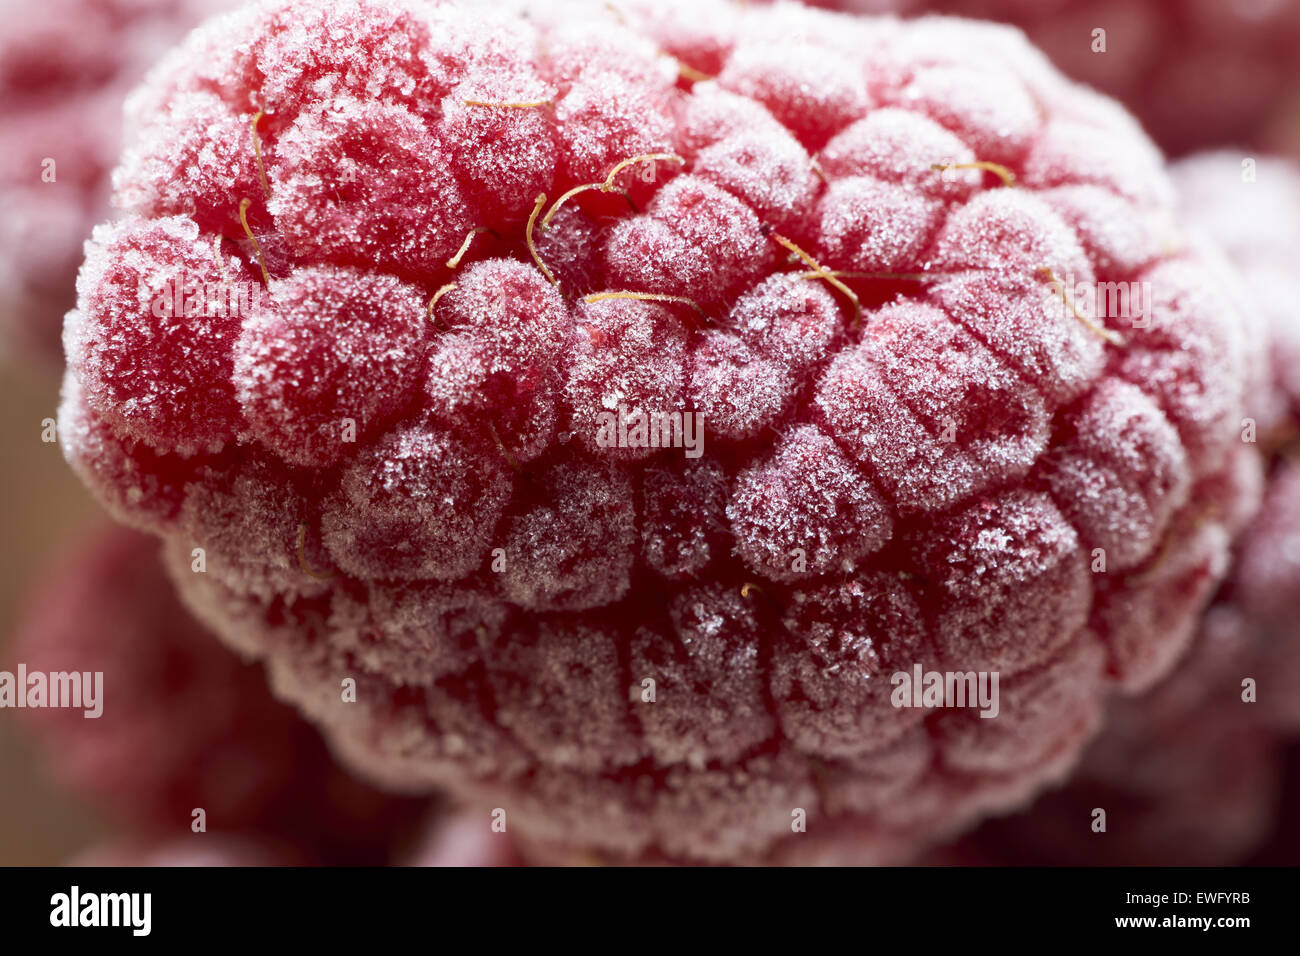 Extreme macro shot of a frozen raspberry covered with ice crystals - Stock Image